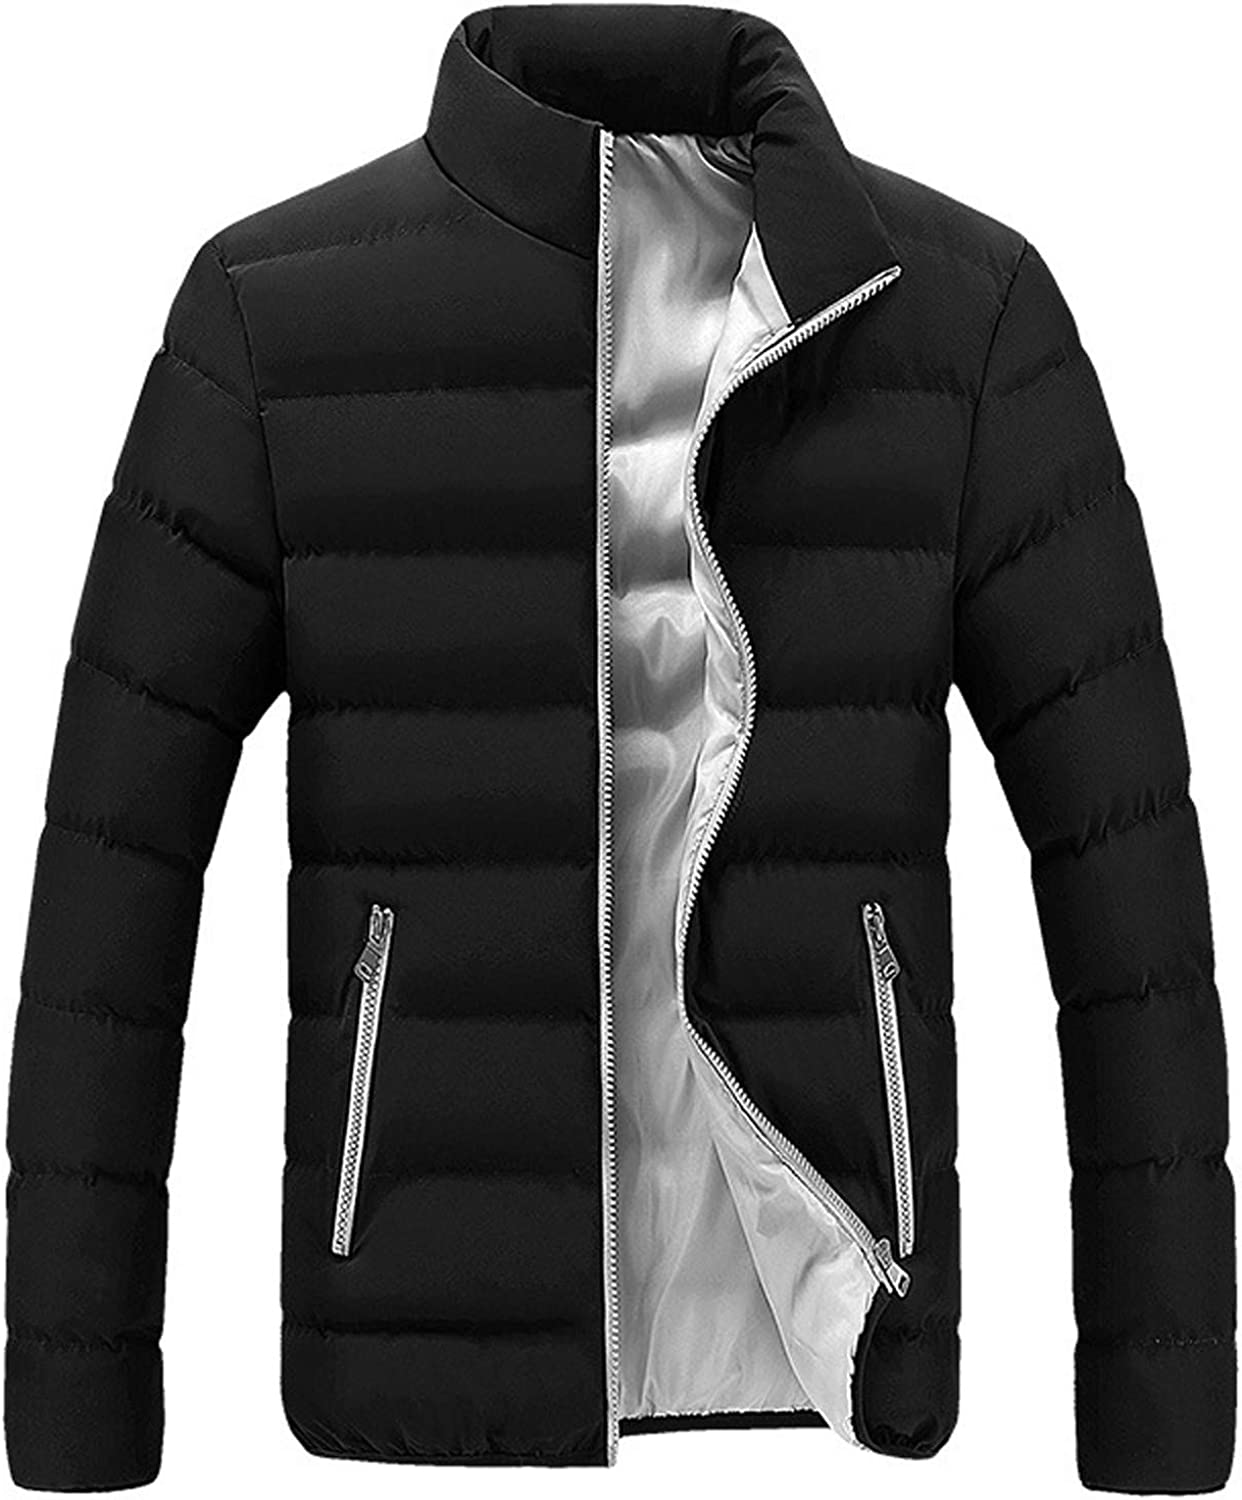 NREALY Men Winter Warm Slim Fit Thick Bubble Coat Casual Jacket Outerwear